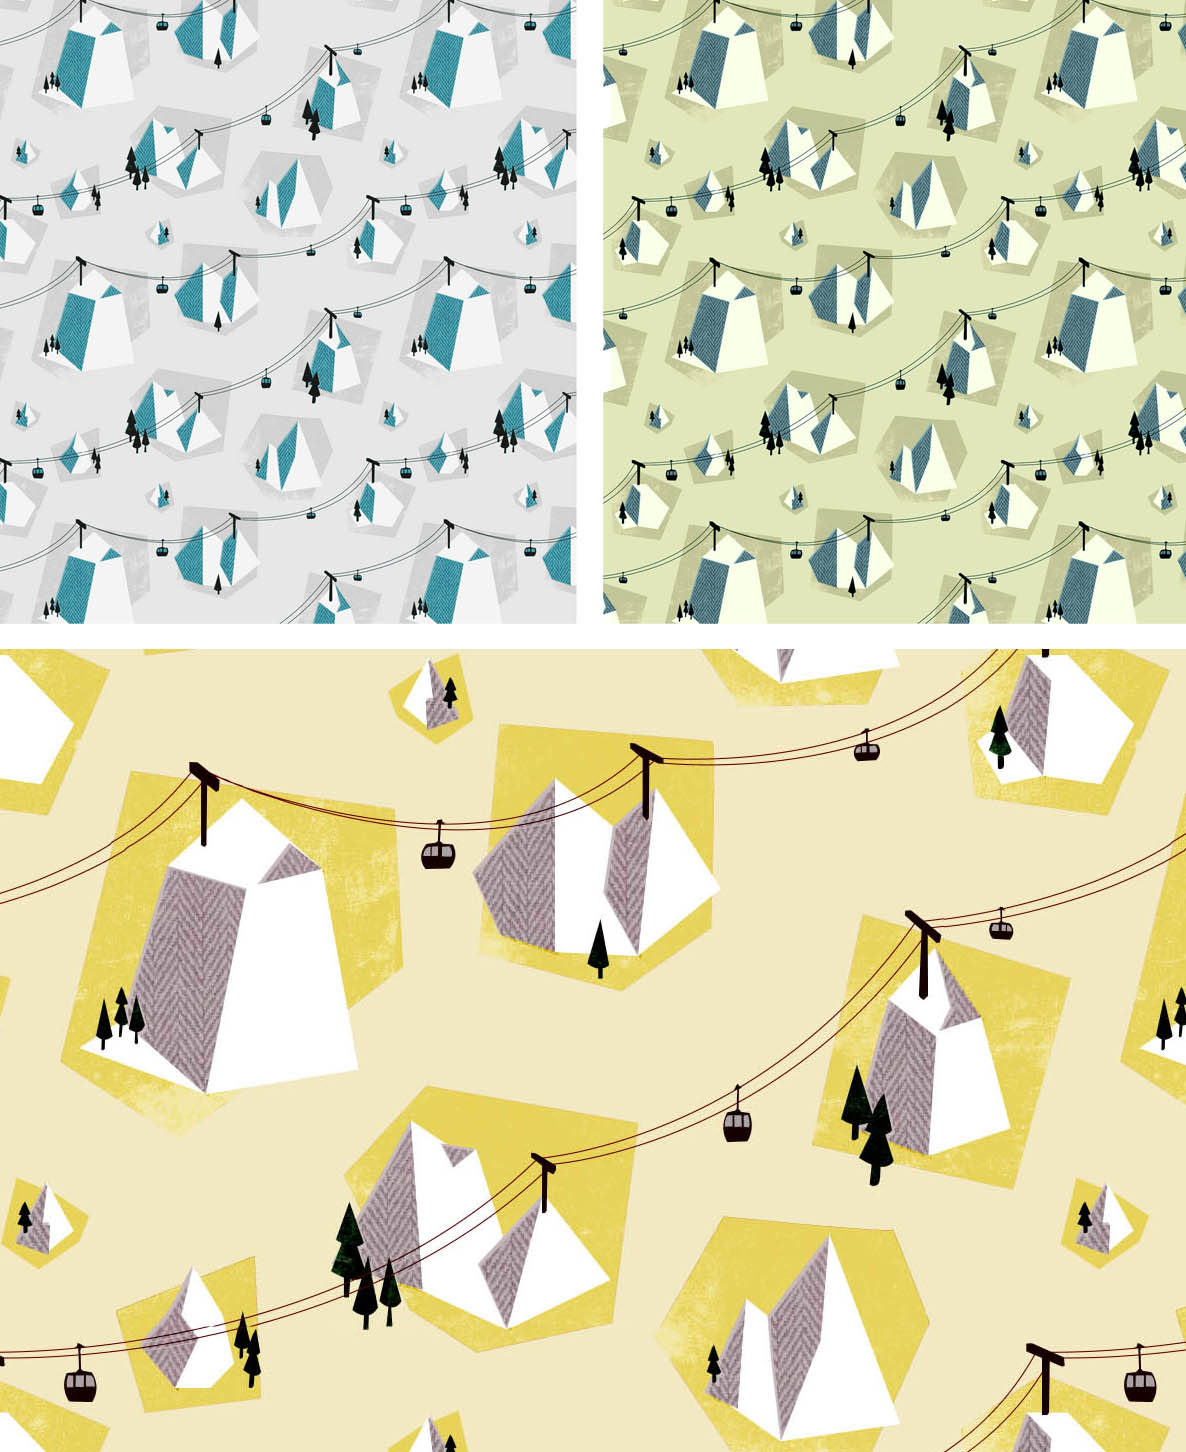 I've been working on some patterns recently and will be sending off my designs to be printed onto fabric at the end of this week. This chairlift pattern comes in Grey, Mustard and Green. If you're interested in getting your hands on some send me an email at kerryhyndman@hotmail.com and I'll add your fabric to my order. I'll place the order on Friday 25th Jan so let me know before then if you would like some. The fabric is £40 per Yard and can be used for upholstry, cushions and tea towels. p.s the yellow patten is not bigger I just zoomed in to show the detail!